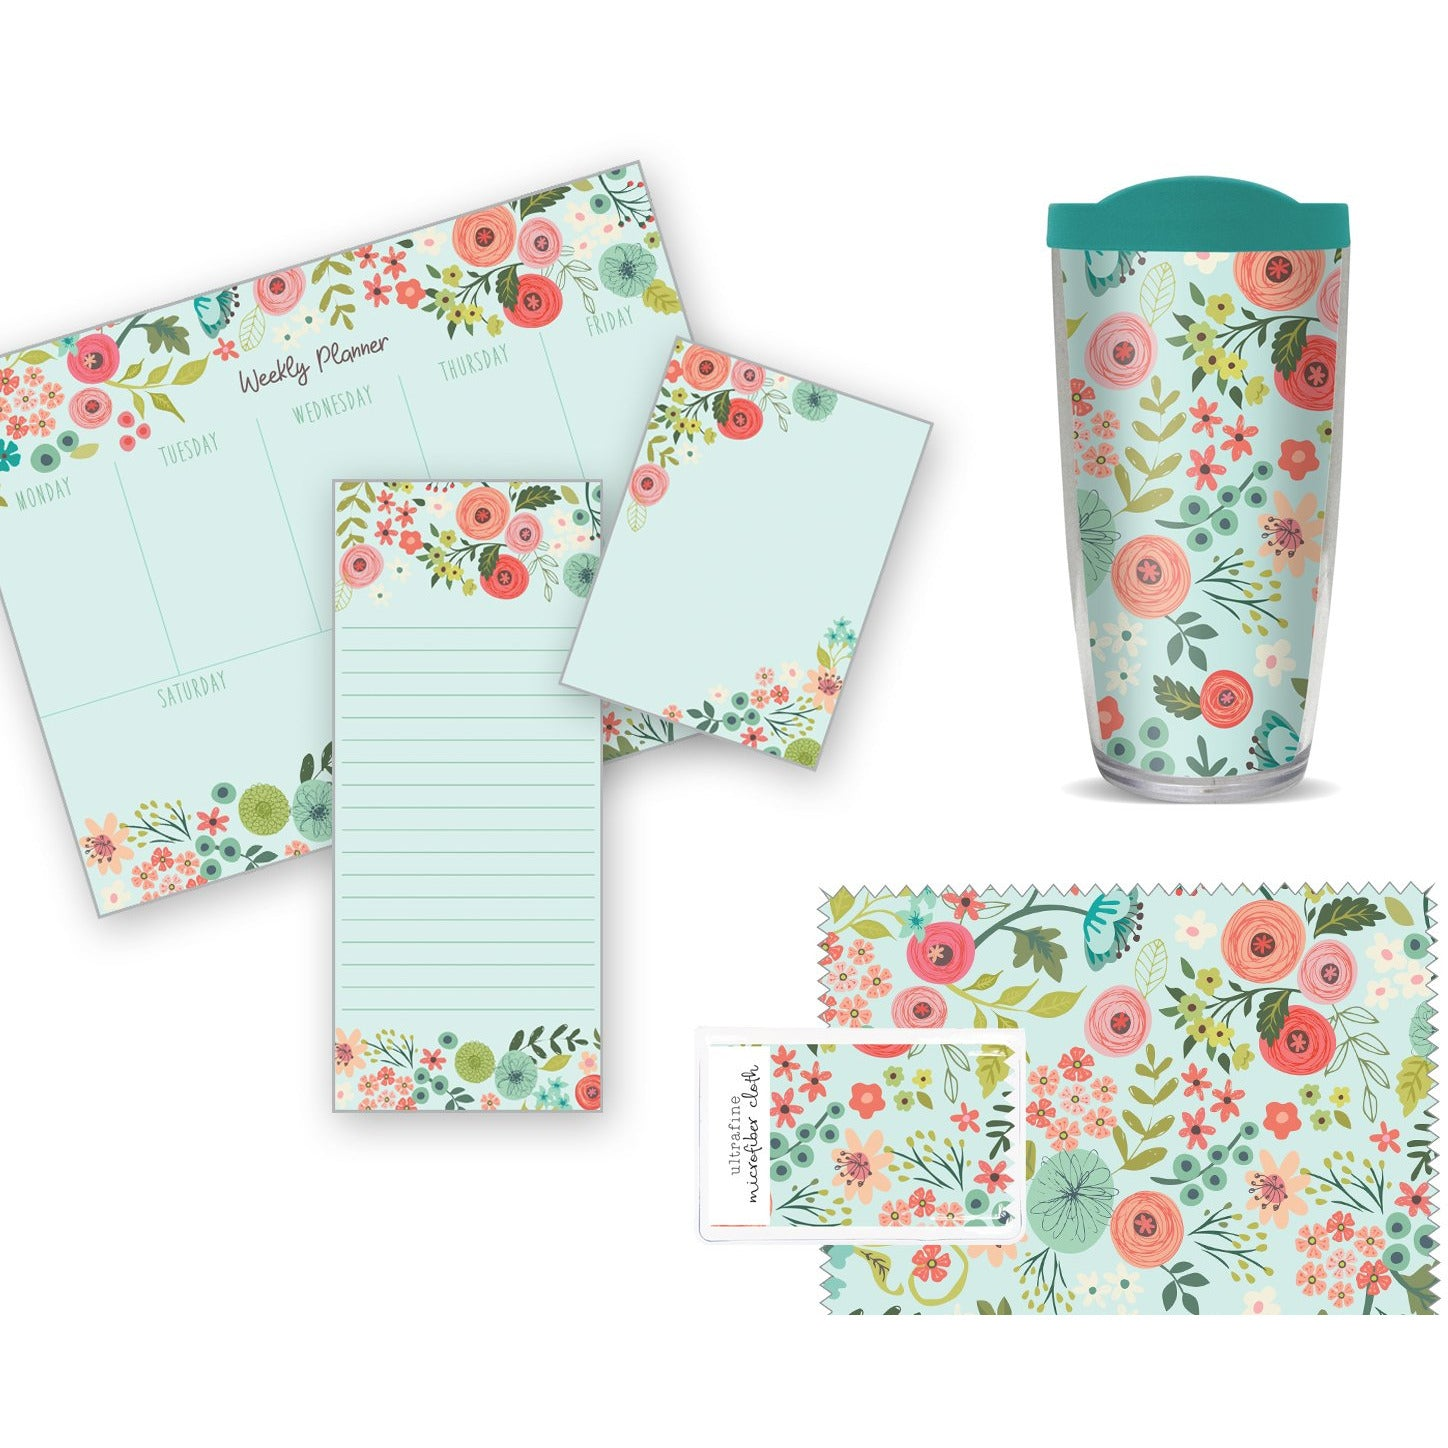 Bundle - Coral and Light Blue Flowers Gift Collection